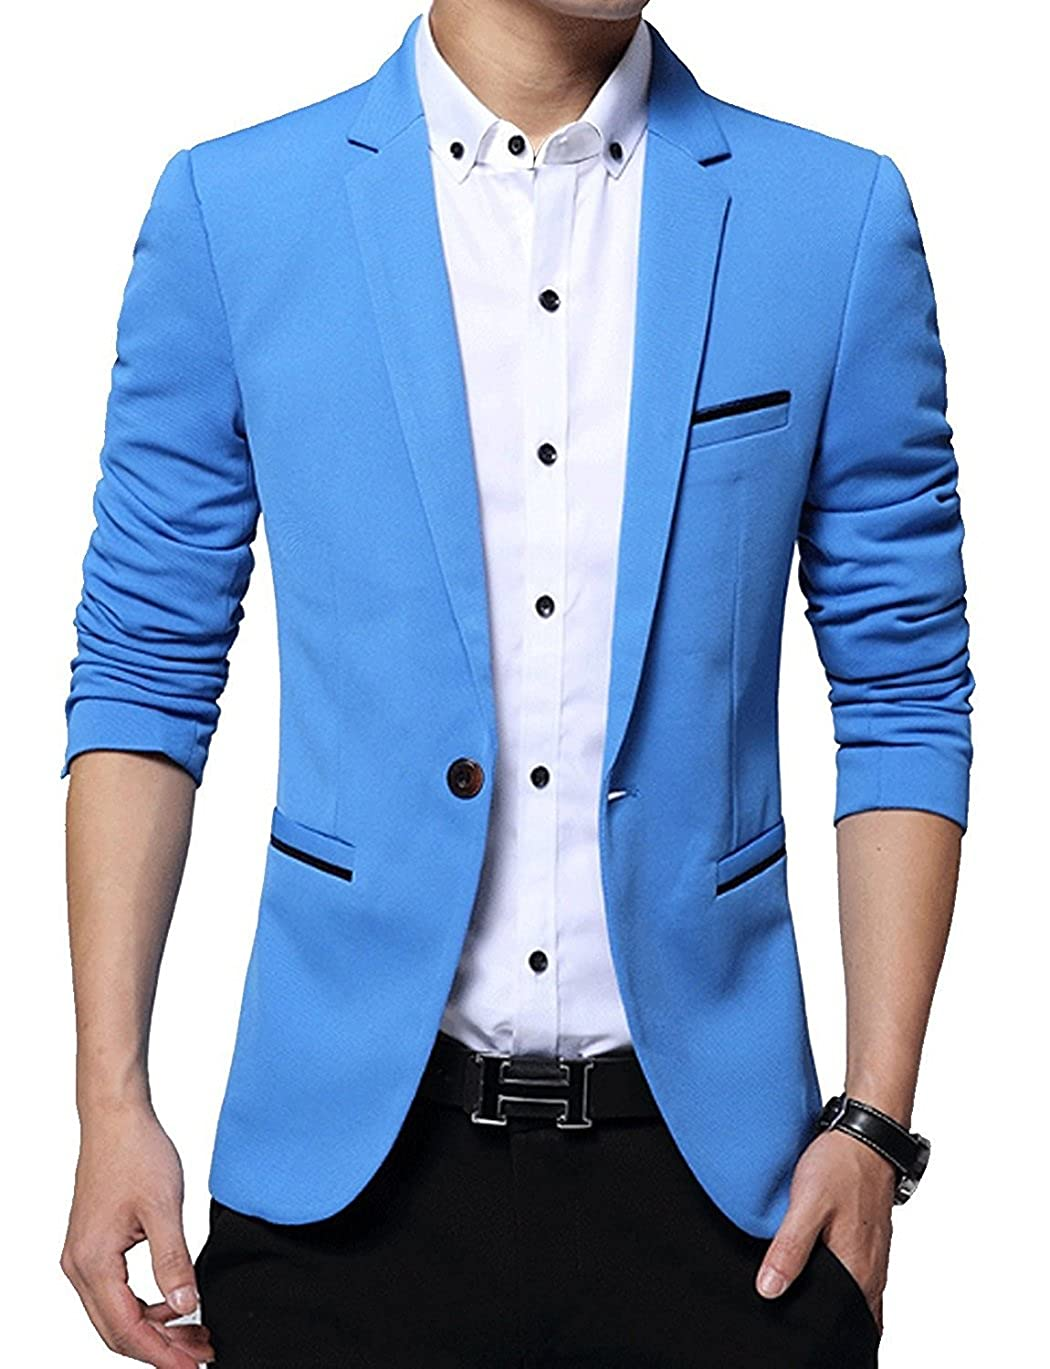 YIMANIE Men's Blazer Jacket Slim Fit Casual Single One Button Premium Lightweight Blazer Coat